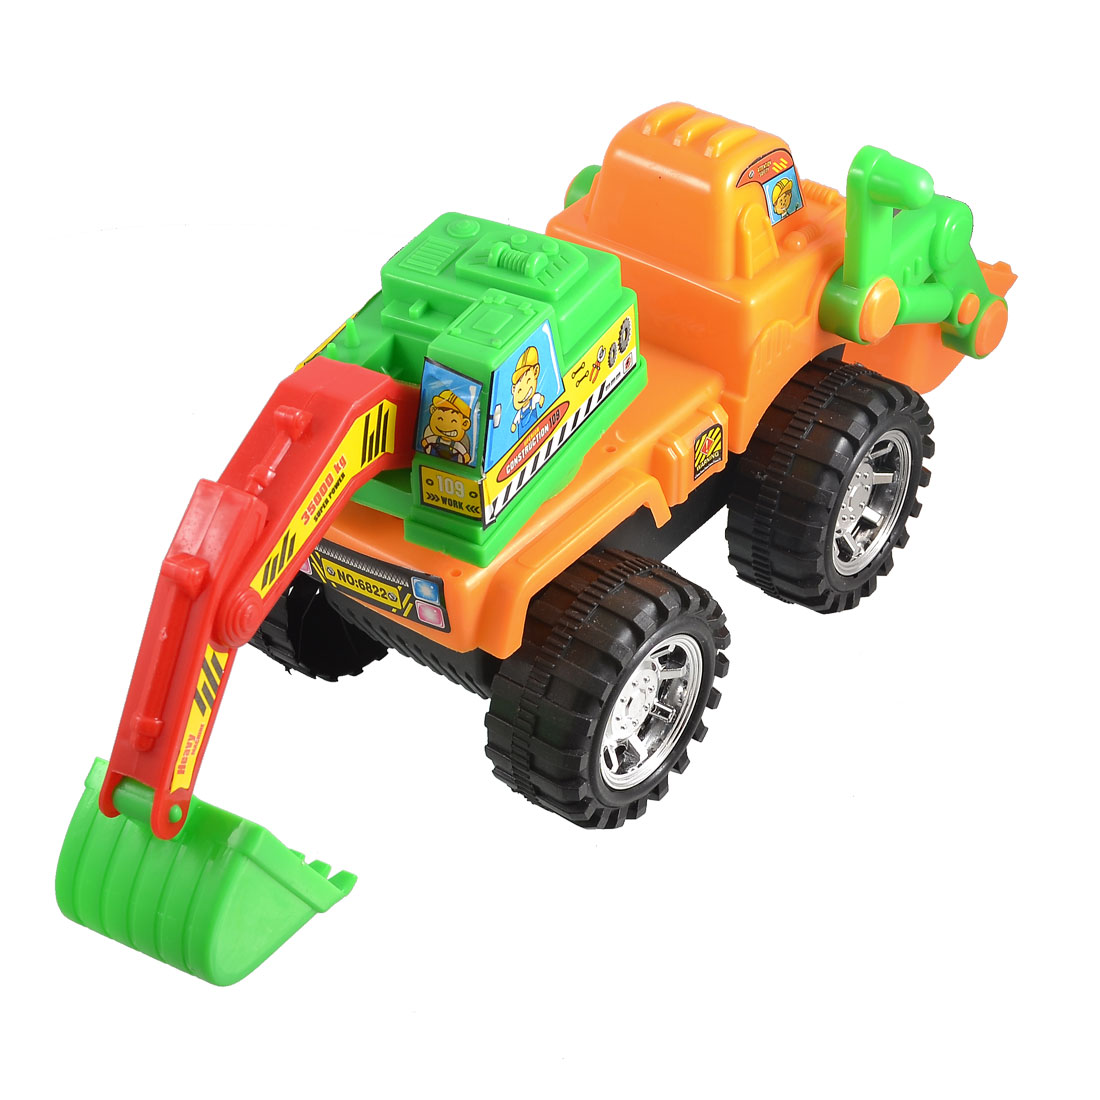 Kids Manual Plaything Assorted Color Plastic Earthworks Digger Car Truck Toy